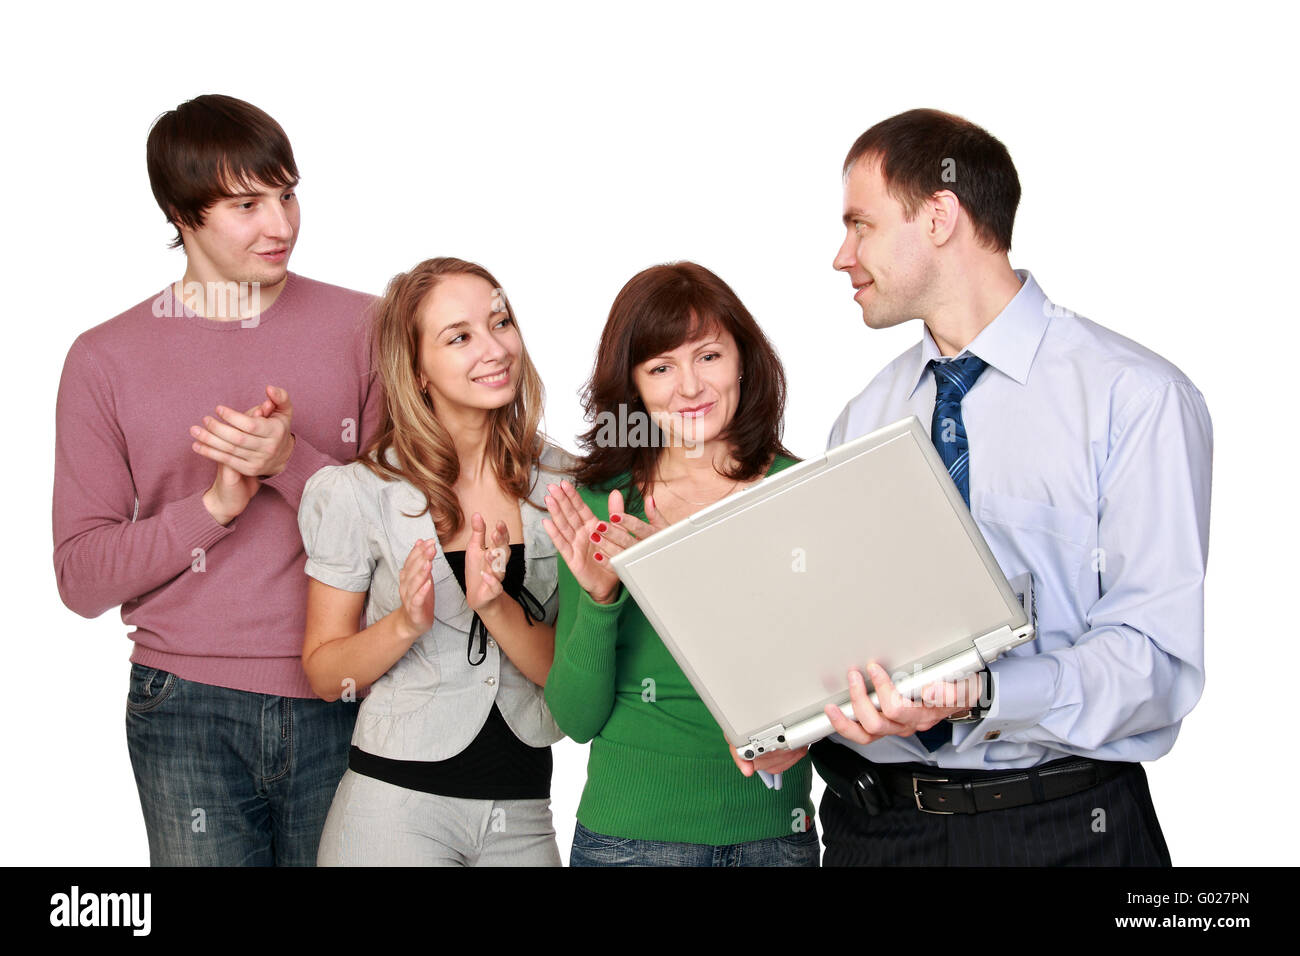 The group of office workers is pleased to good news - Stock Image